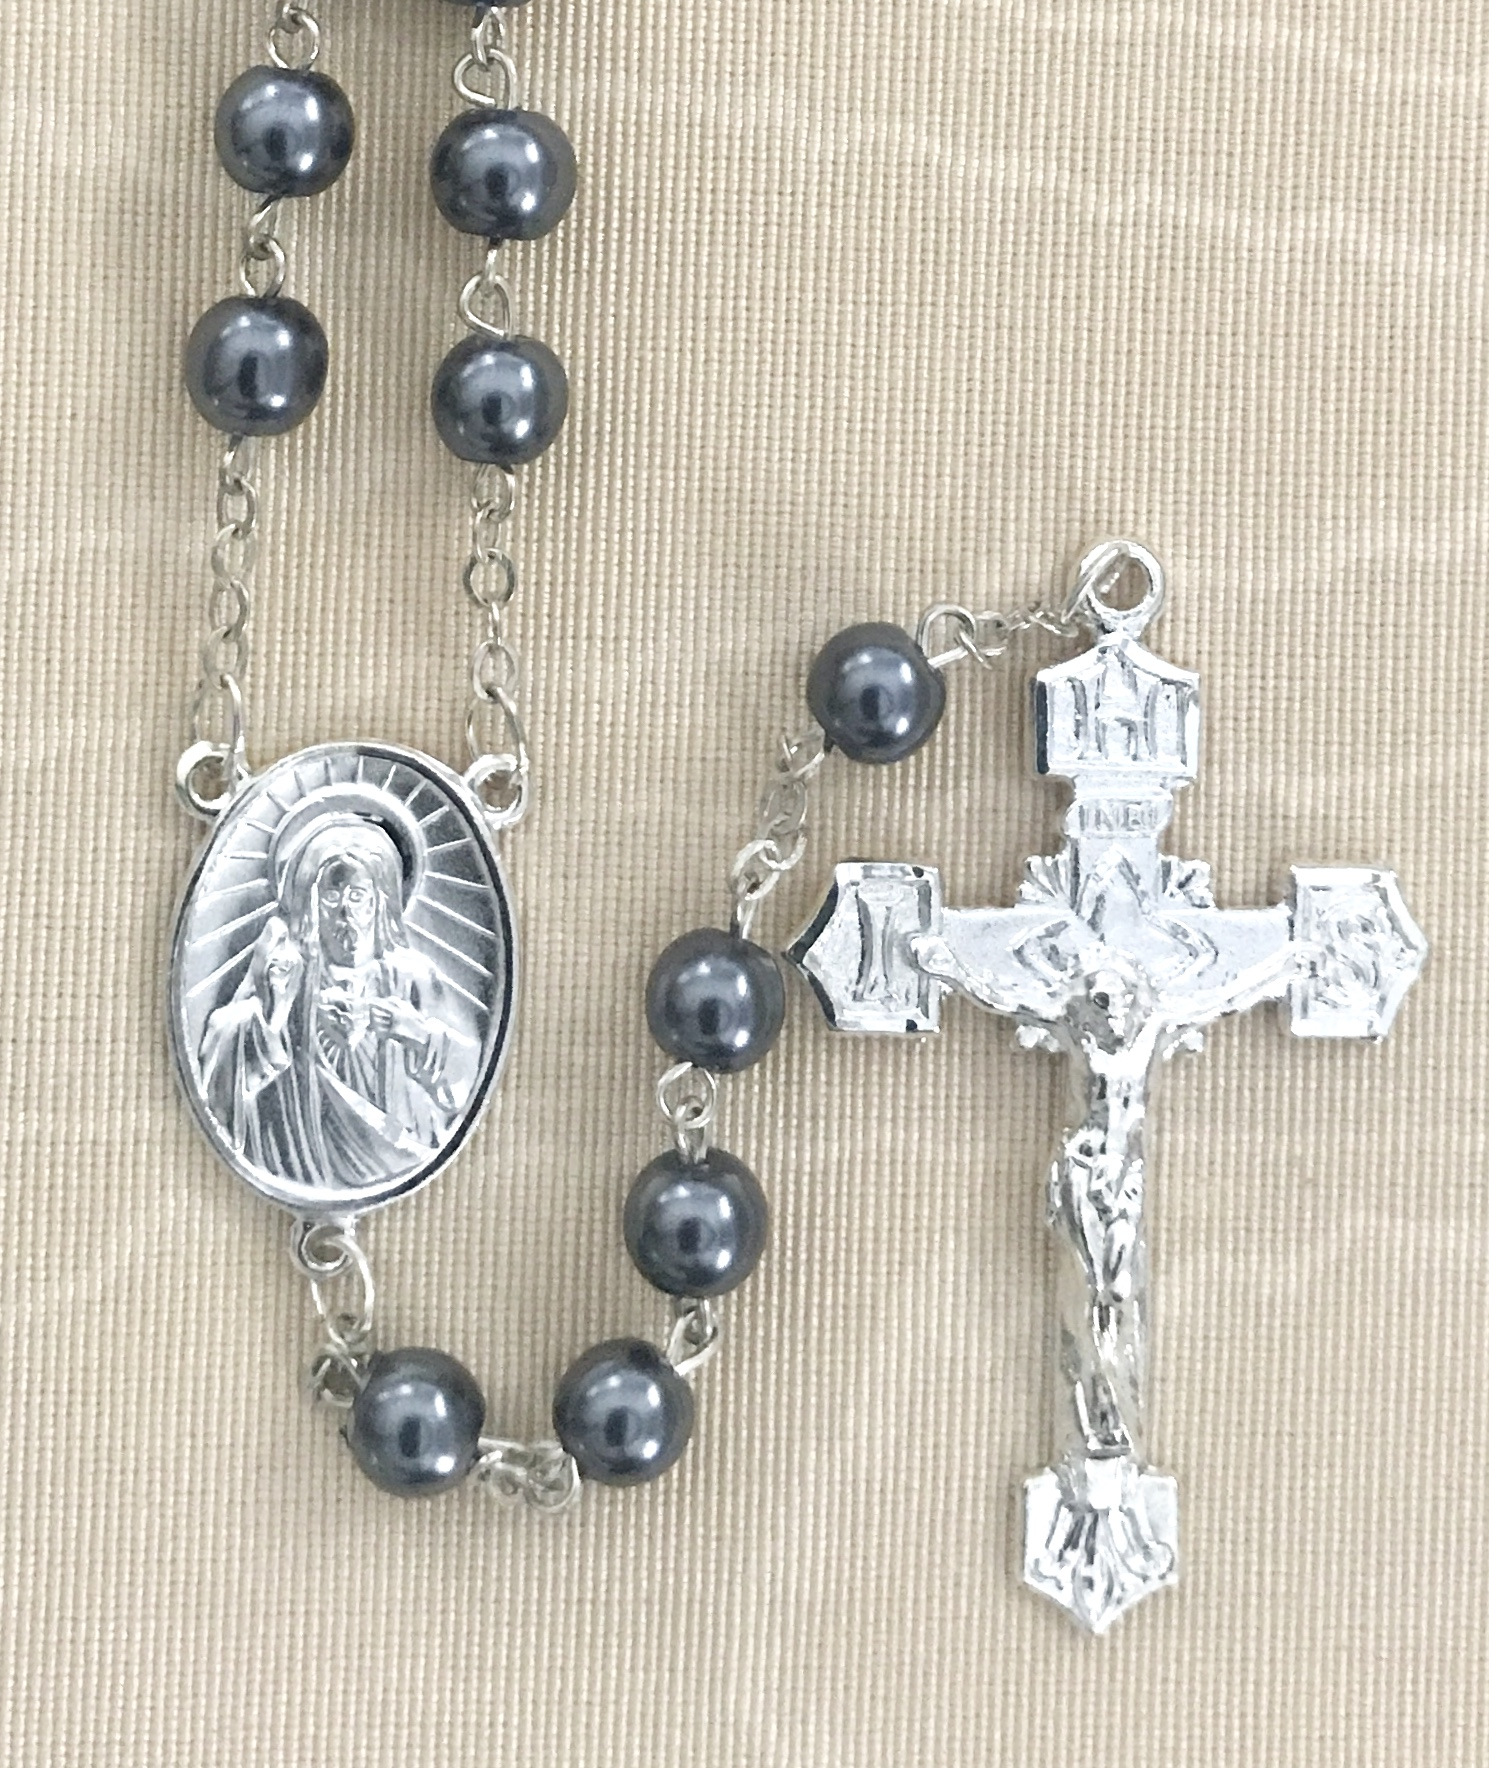 6mm HEMATITE ROSARY WITH STERLING SILVER PLATED CENTER AND CRUCIFIX GIFT BOXED